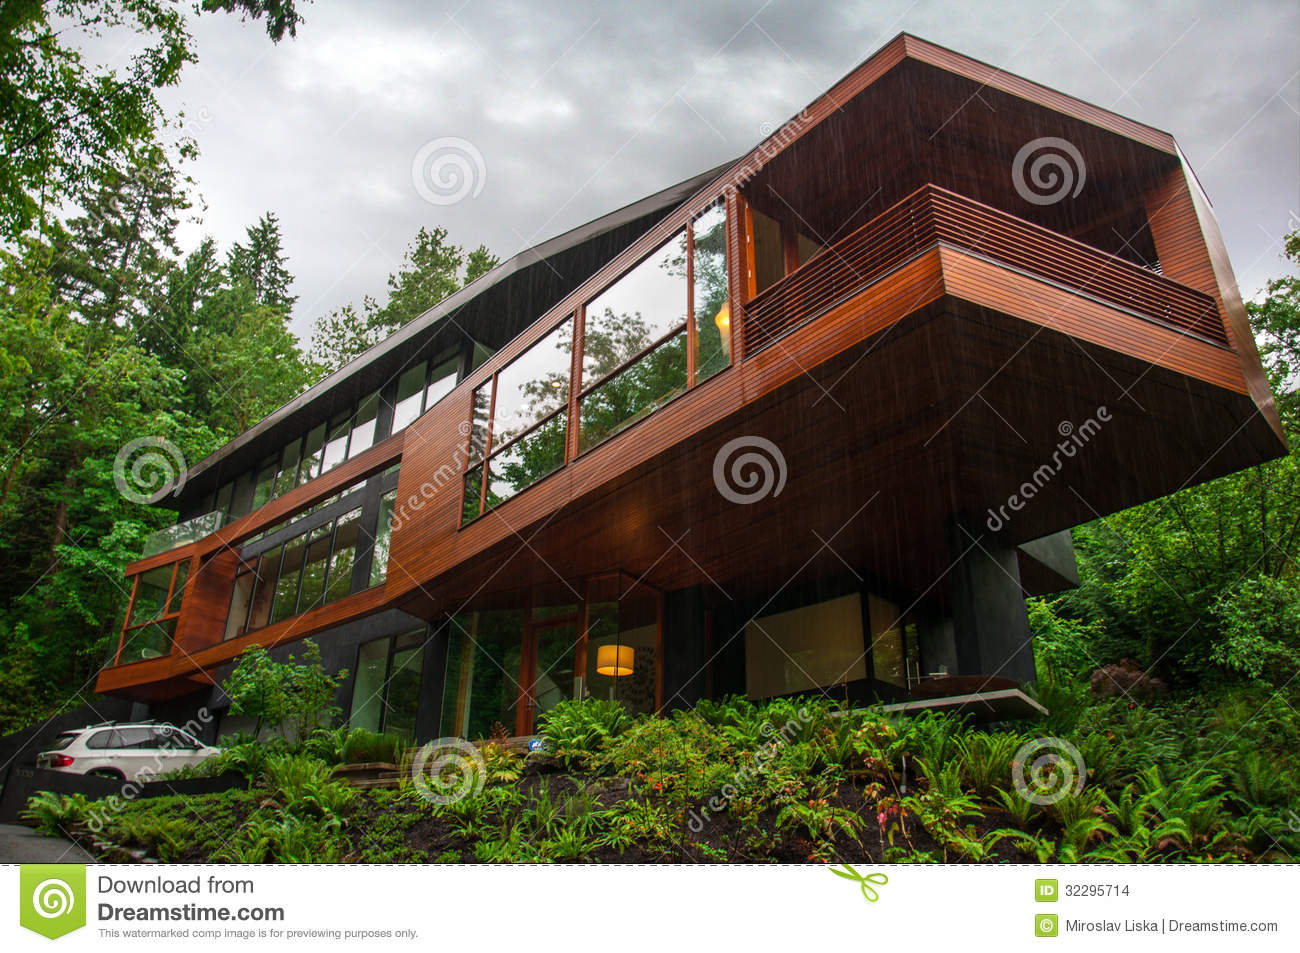 Cullens House From Twilight twilight movie house - home design